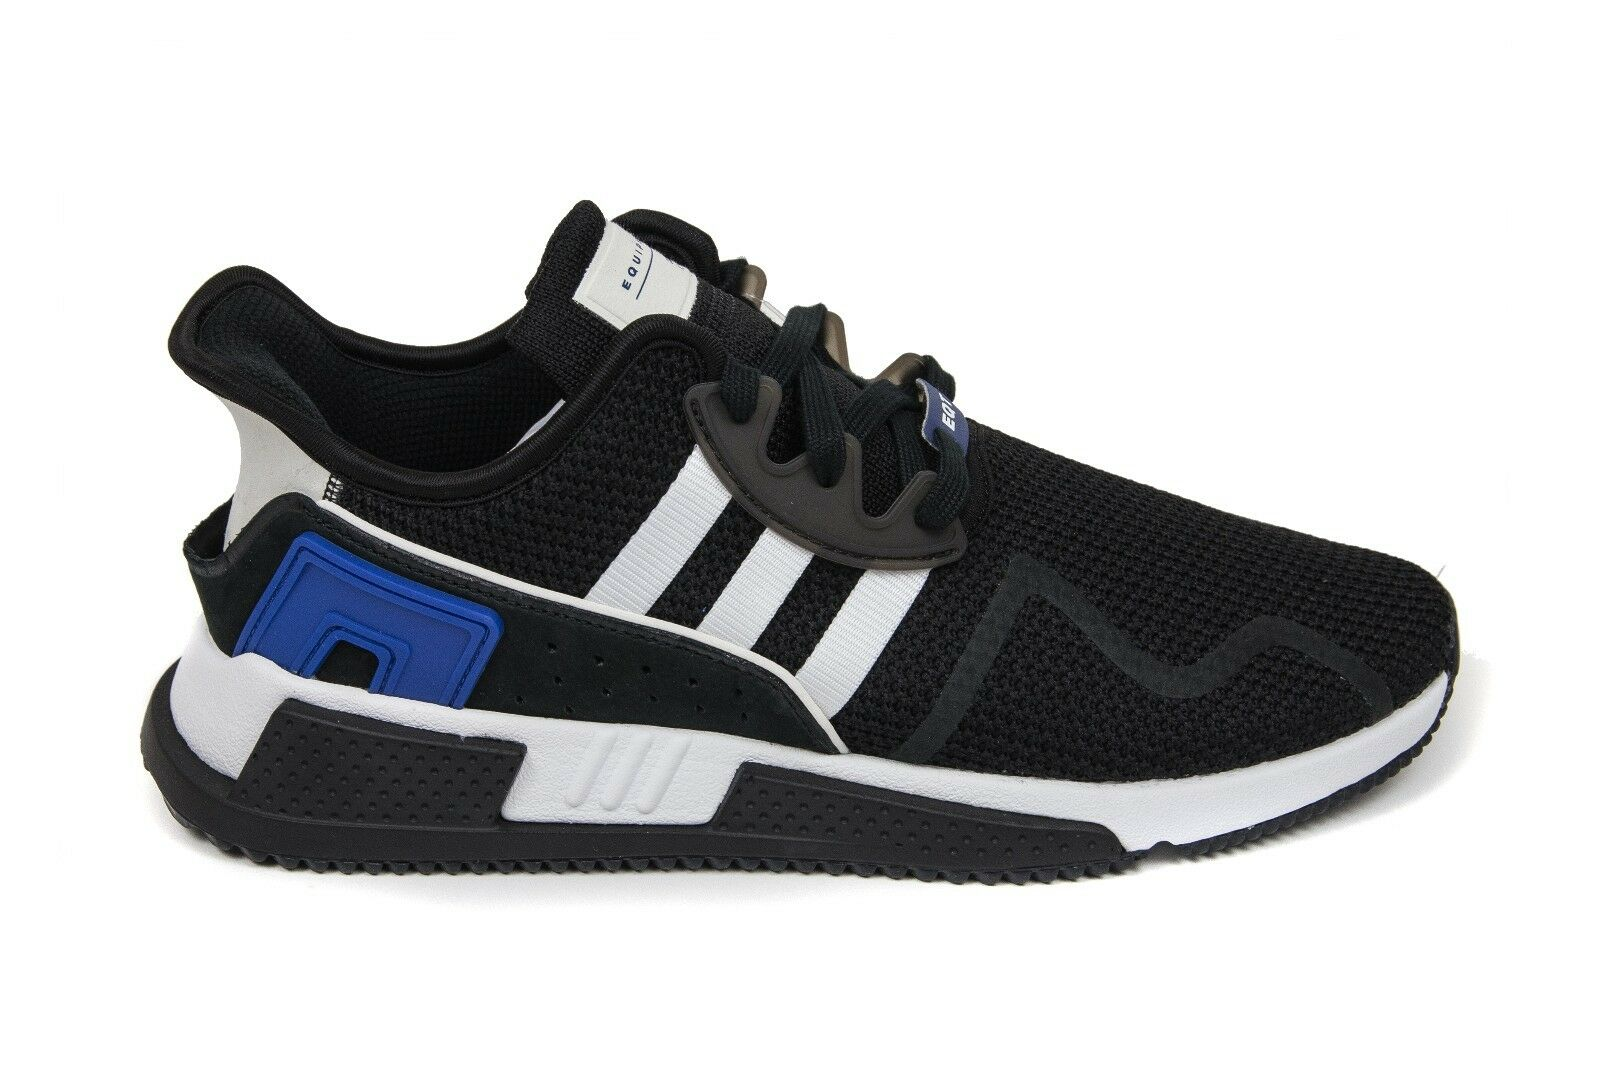 Adidas Originals EQT Cushion ADV in Core Noir/blanc/Royal bleu CQ2374 Free Ship